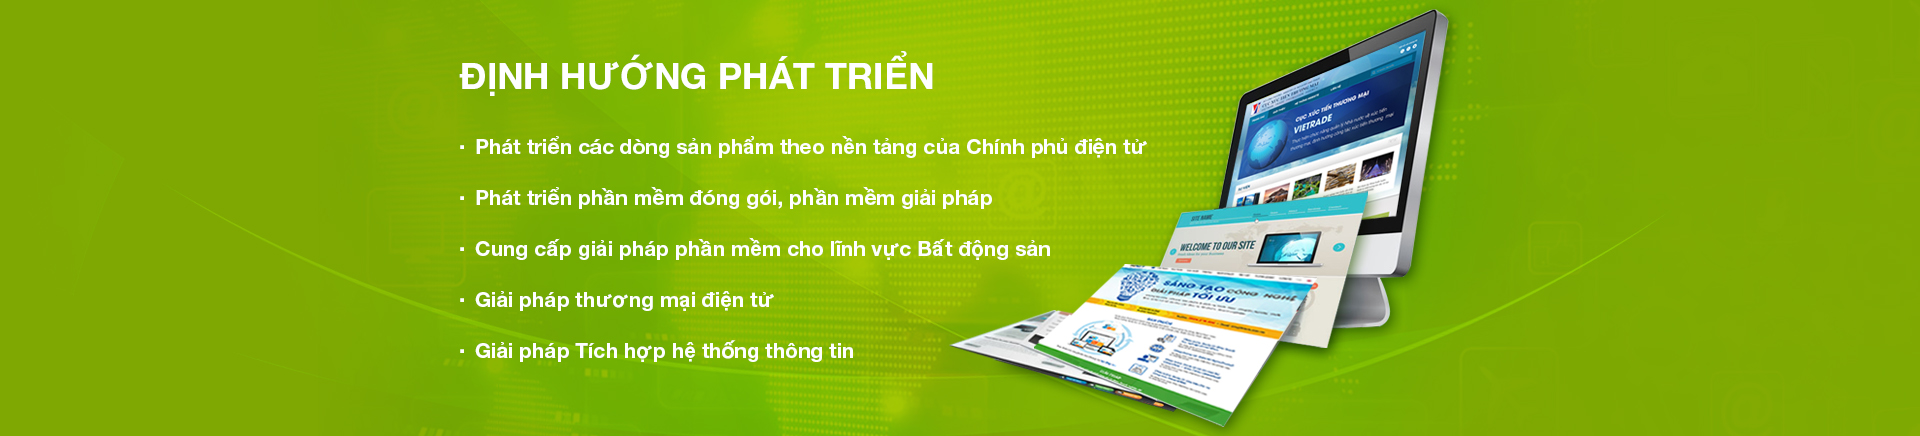 Hinet Vietnam Technology Joint Stock Company - Orientation for development